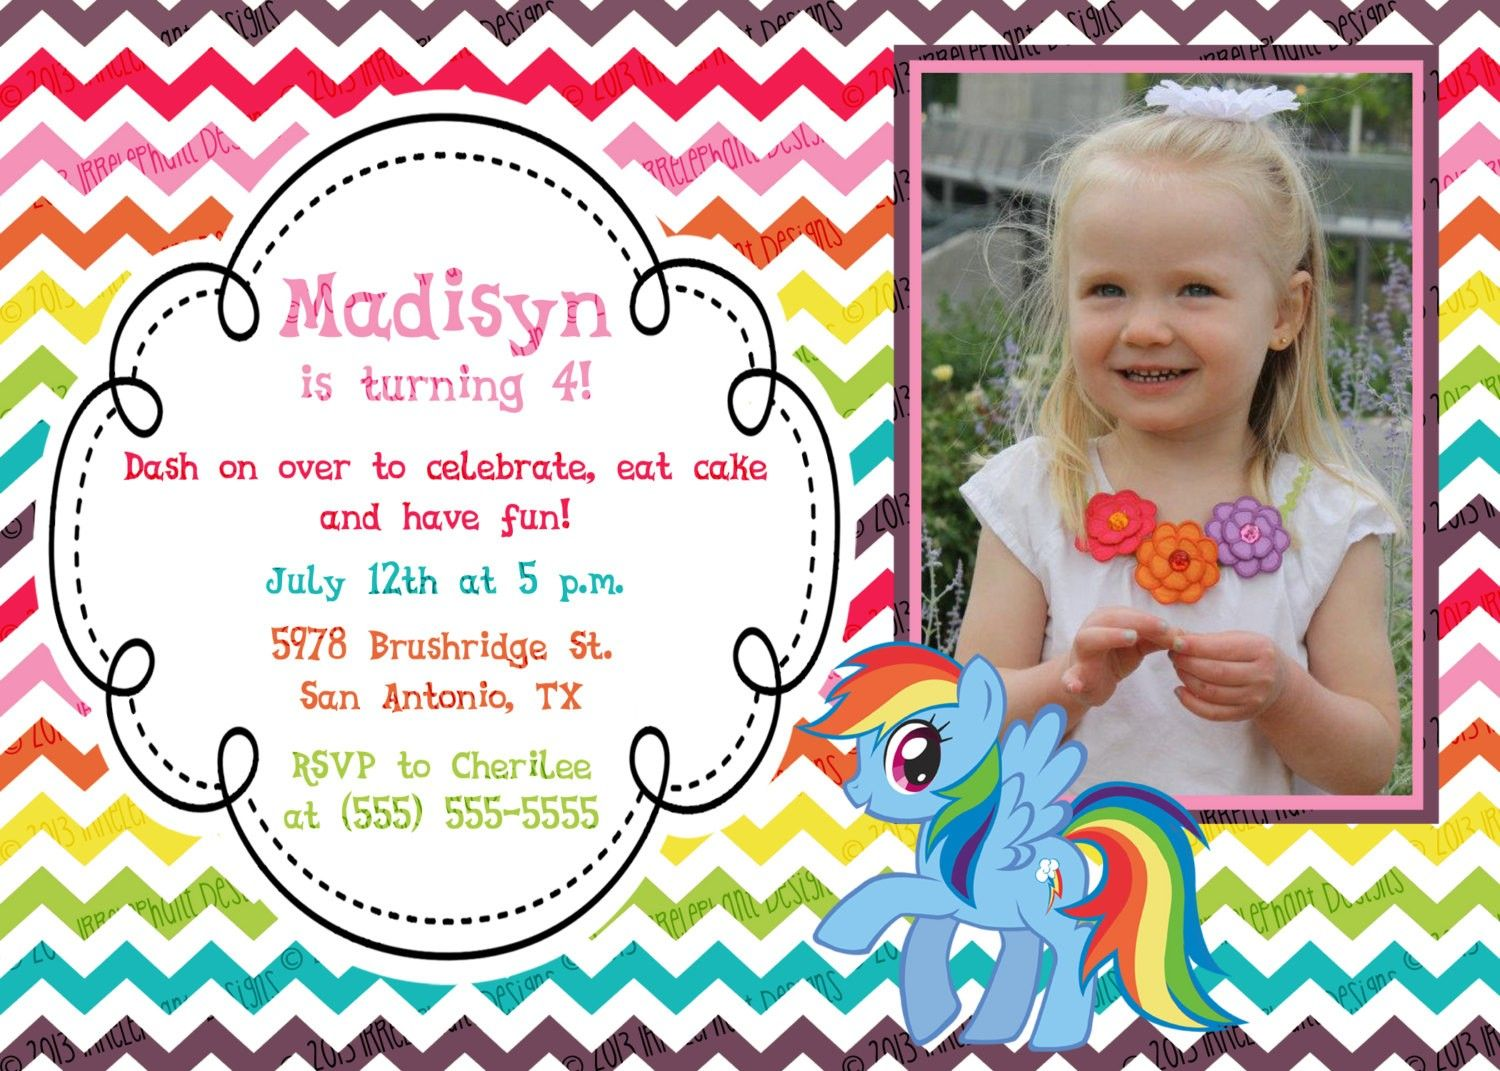 My Little Pony Birthday Invitations Personalized | Sadie\'s B-Day ...